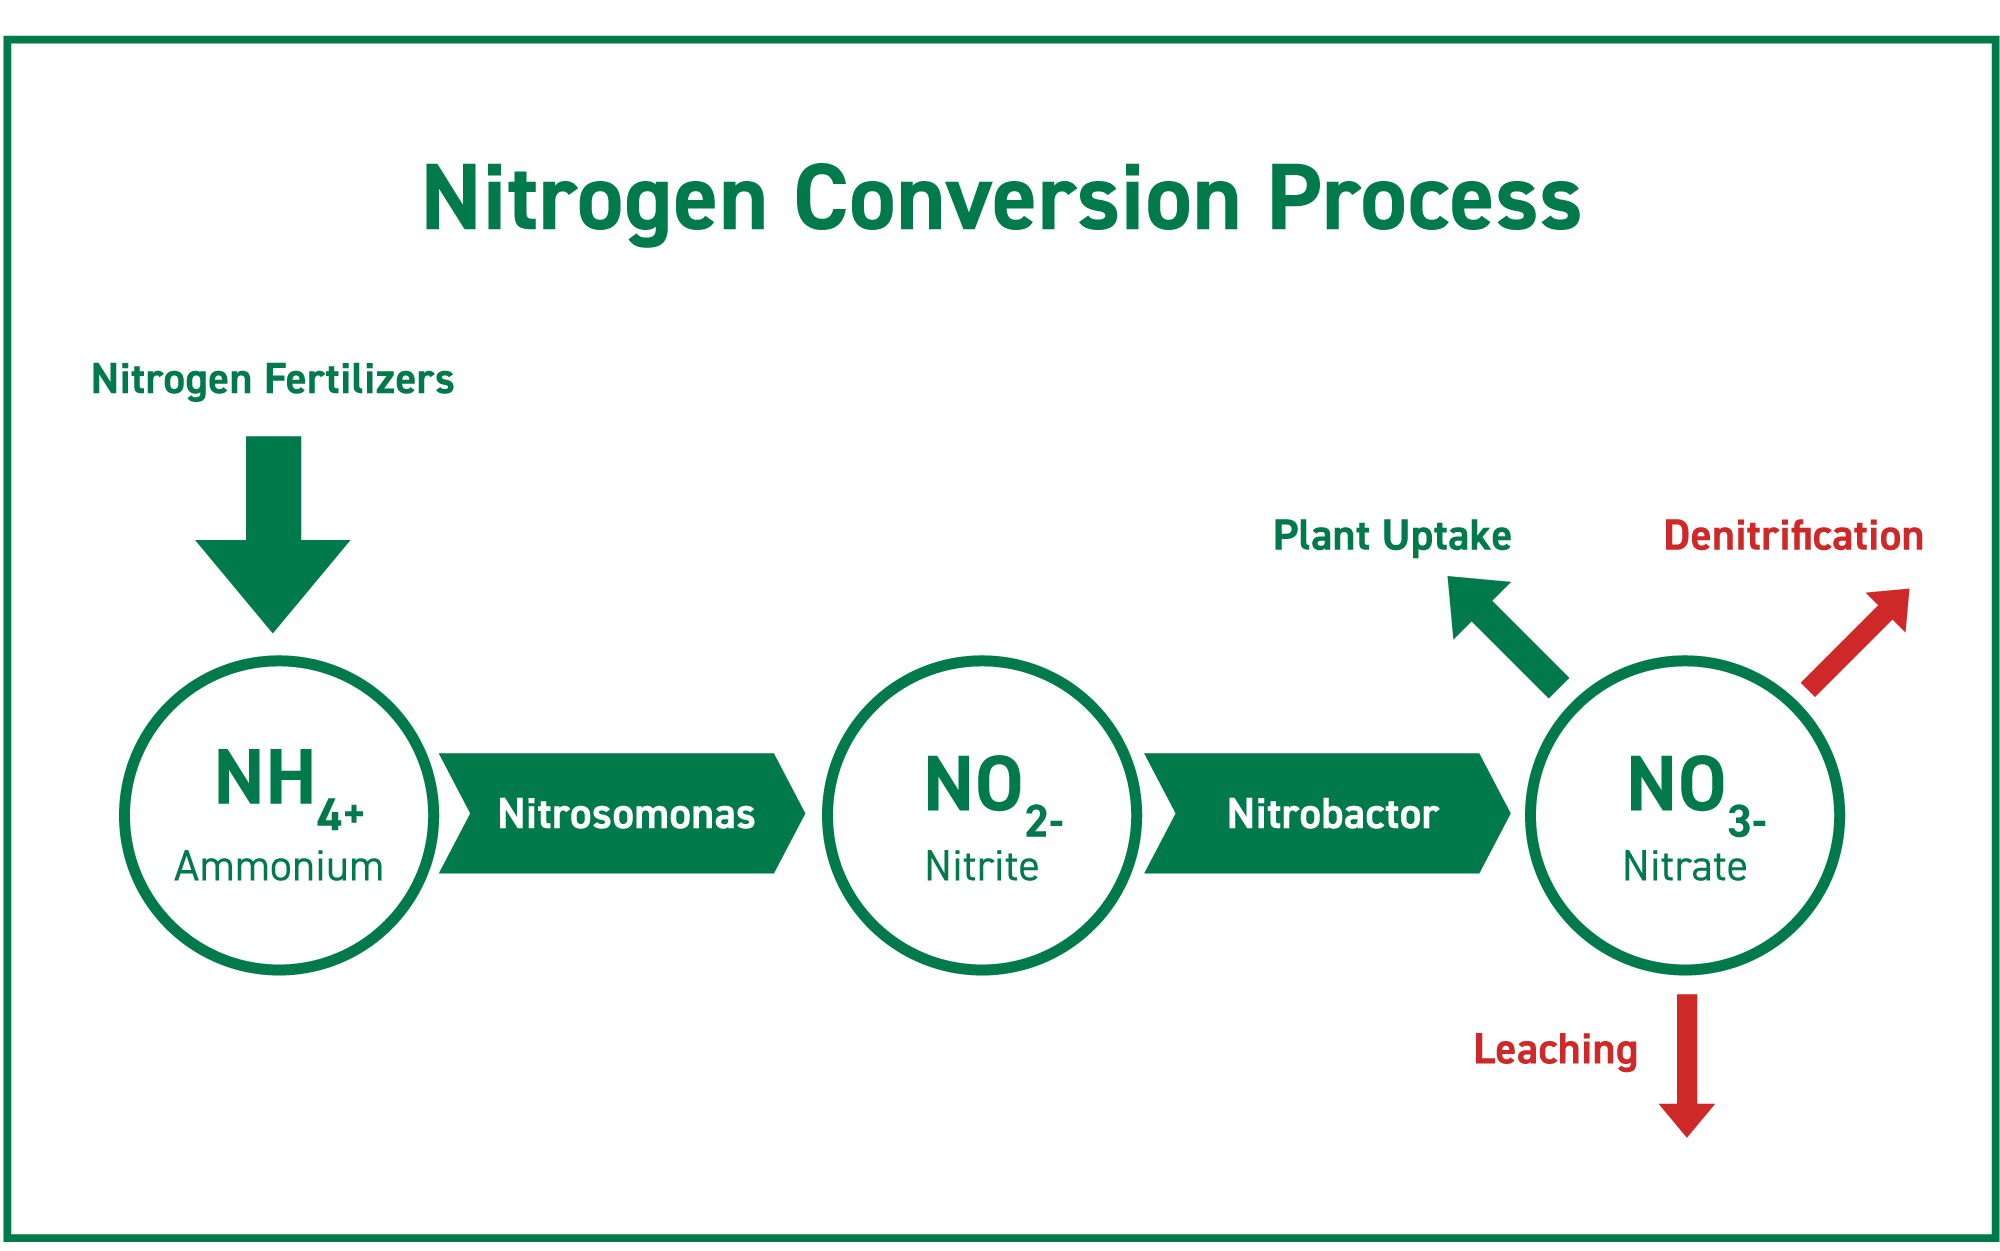 the nitrogen conversion process